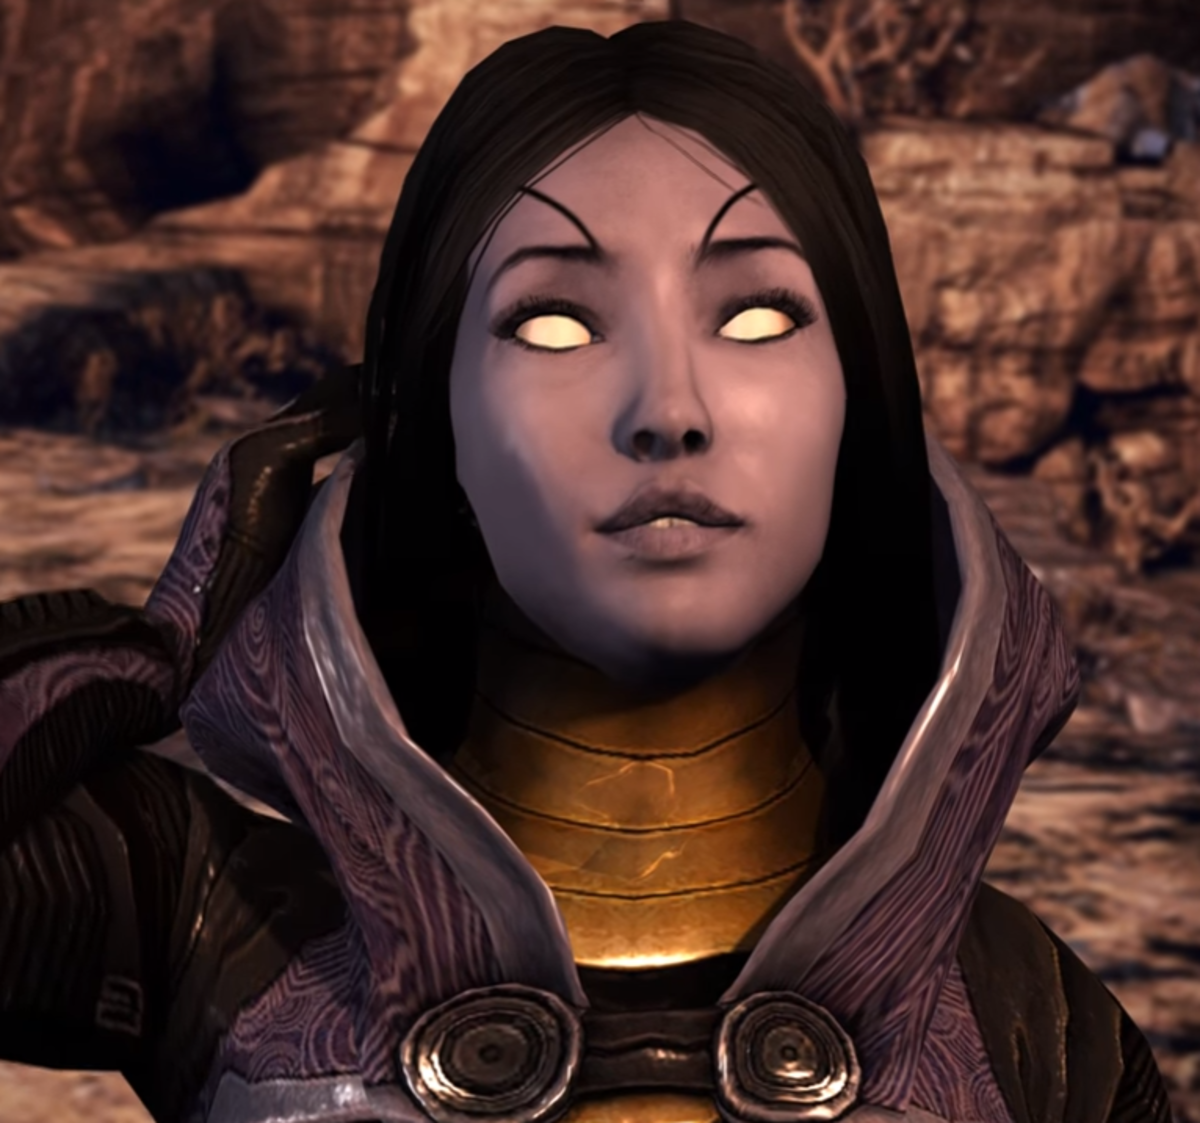 A fan render of Tali's face that should have been in the game.